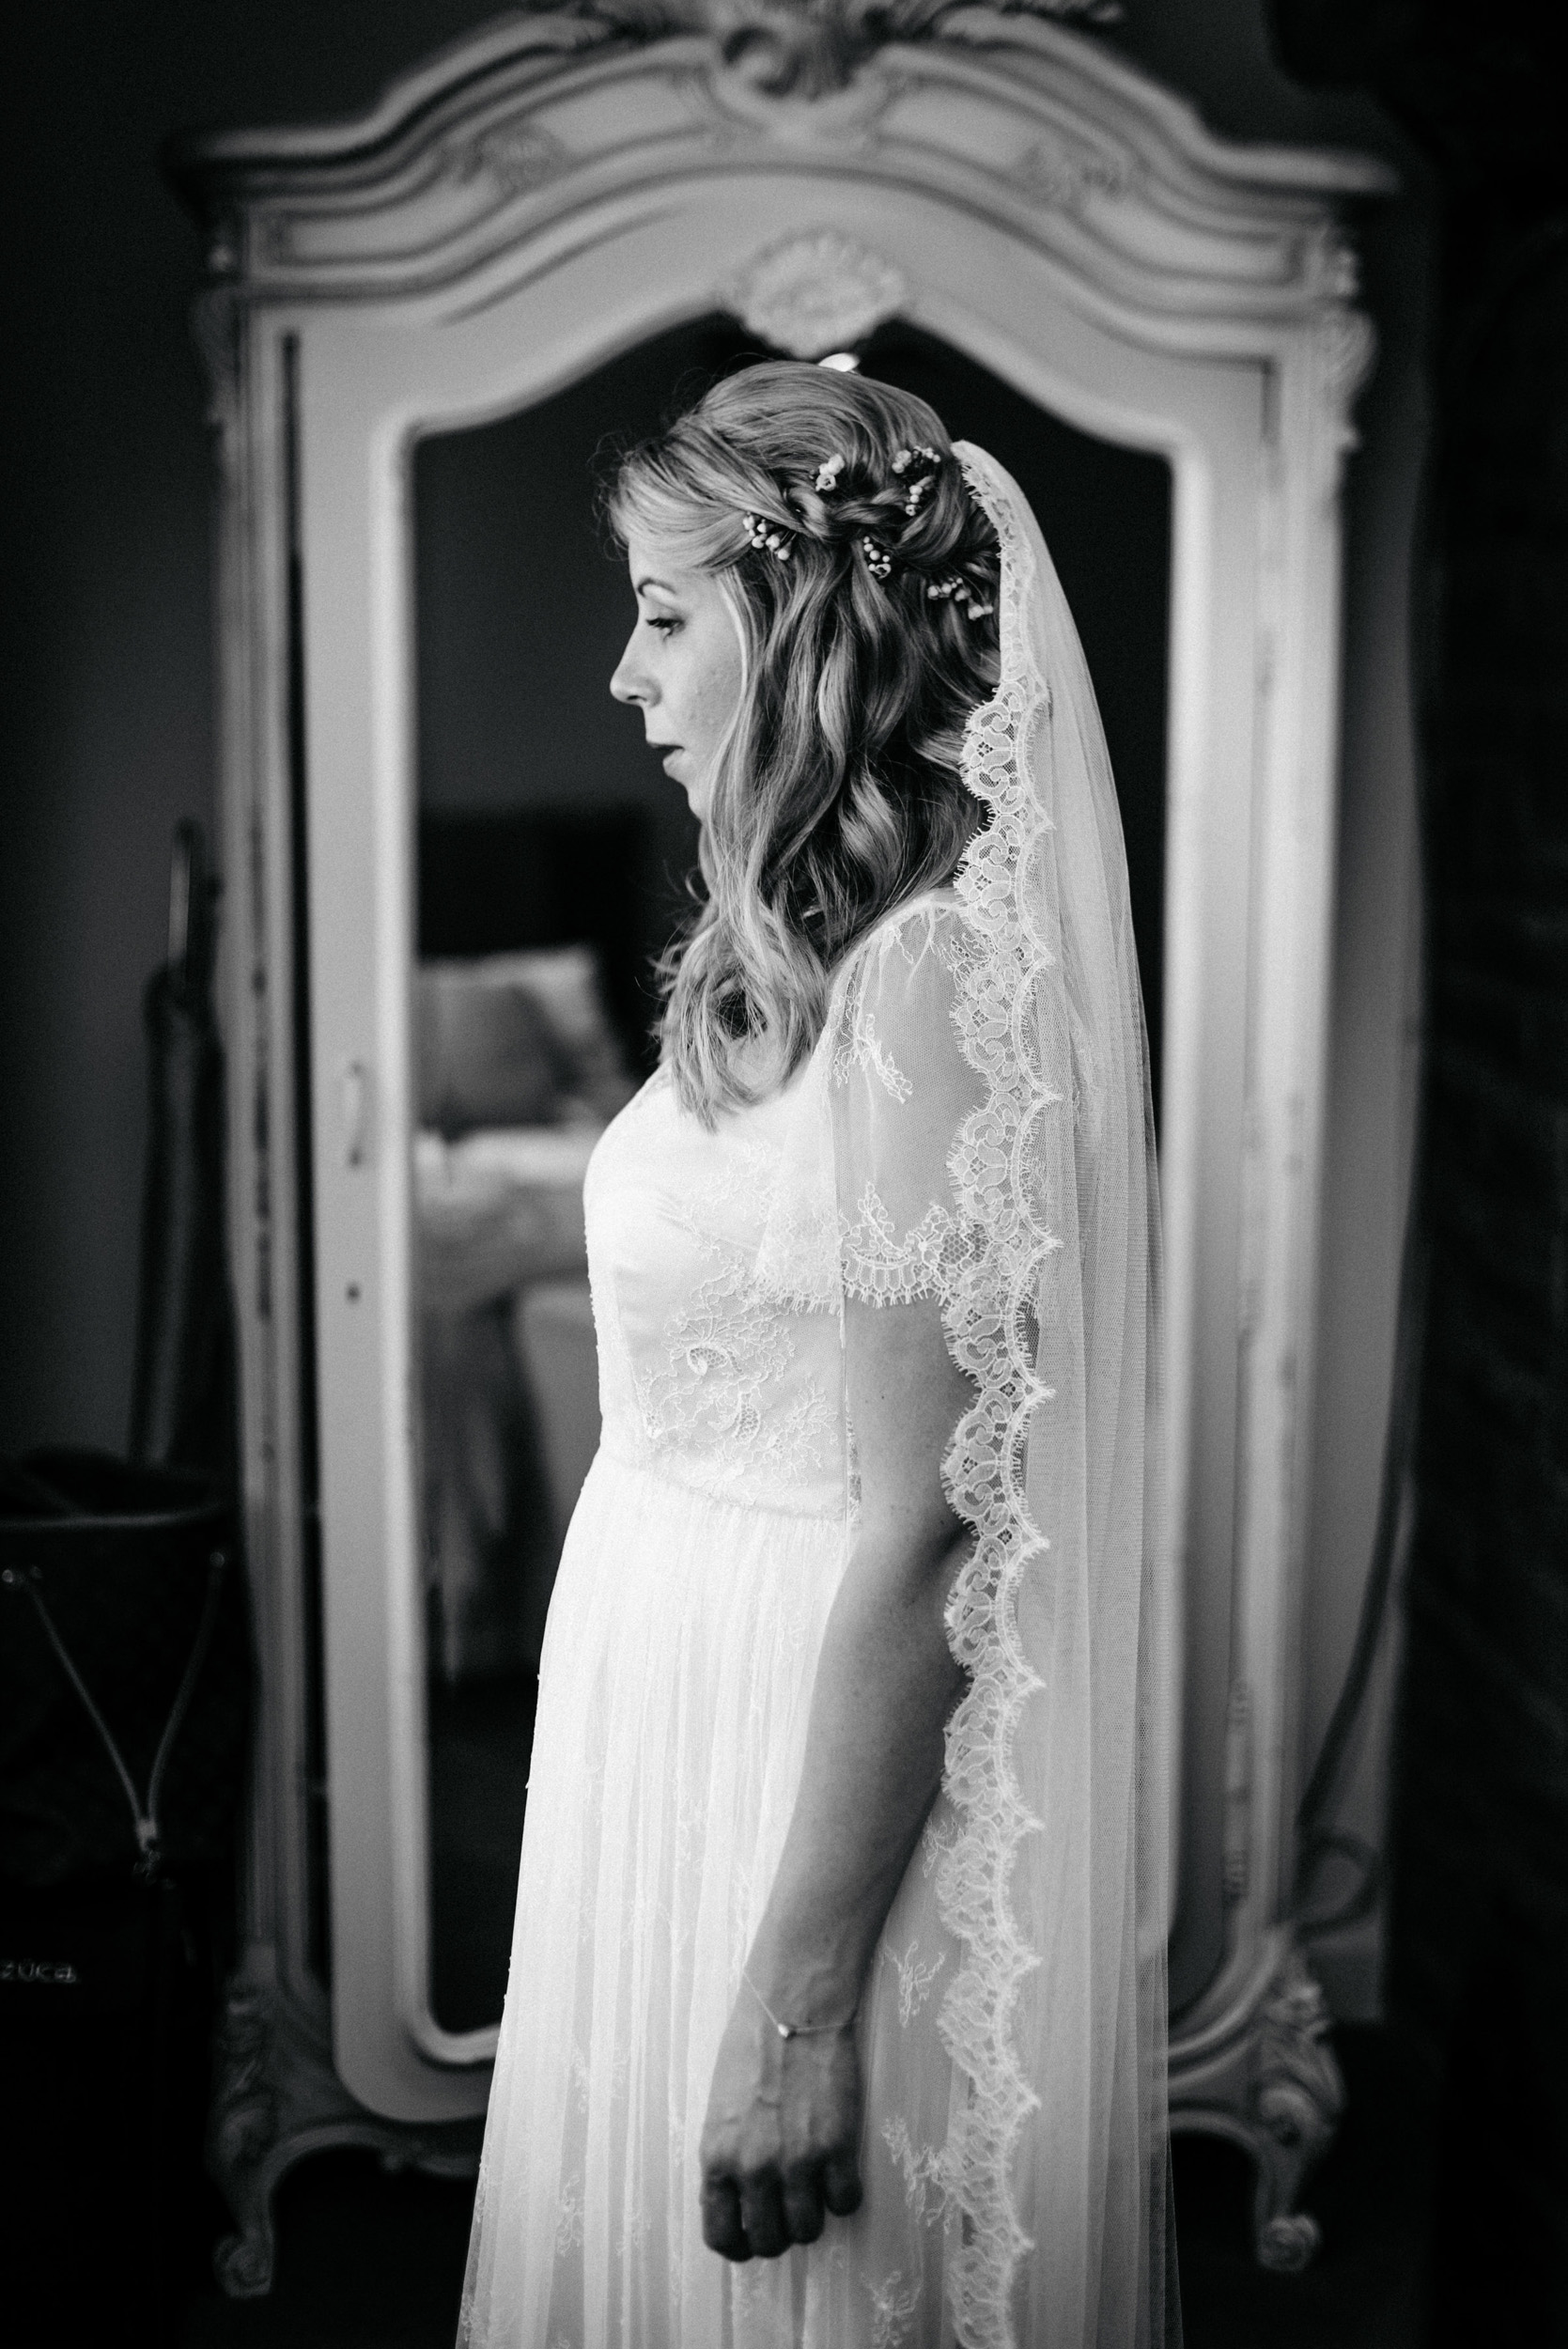 Lace-Wedding-Gown-Rustic-Barn-Wedding-Yorkshire-Kate-Beaumont-1.jpg